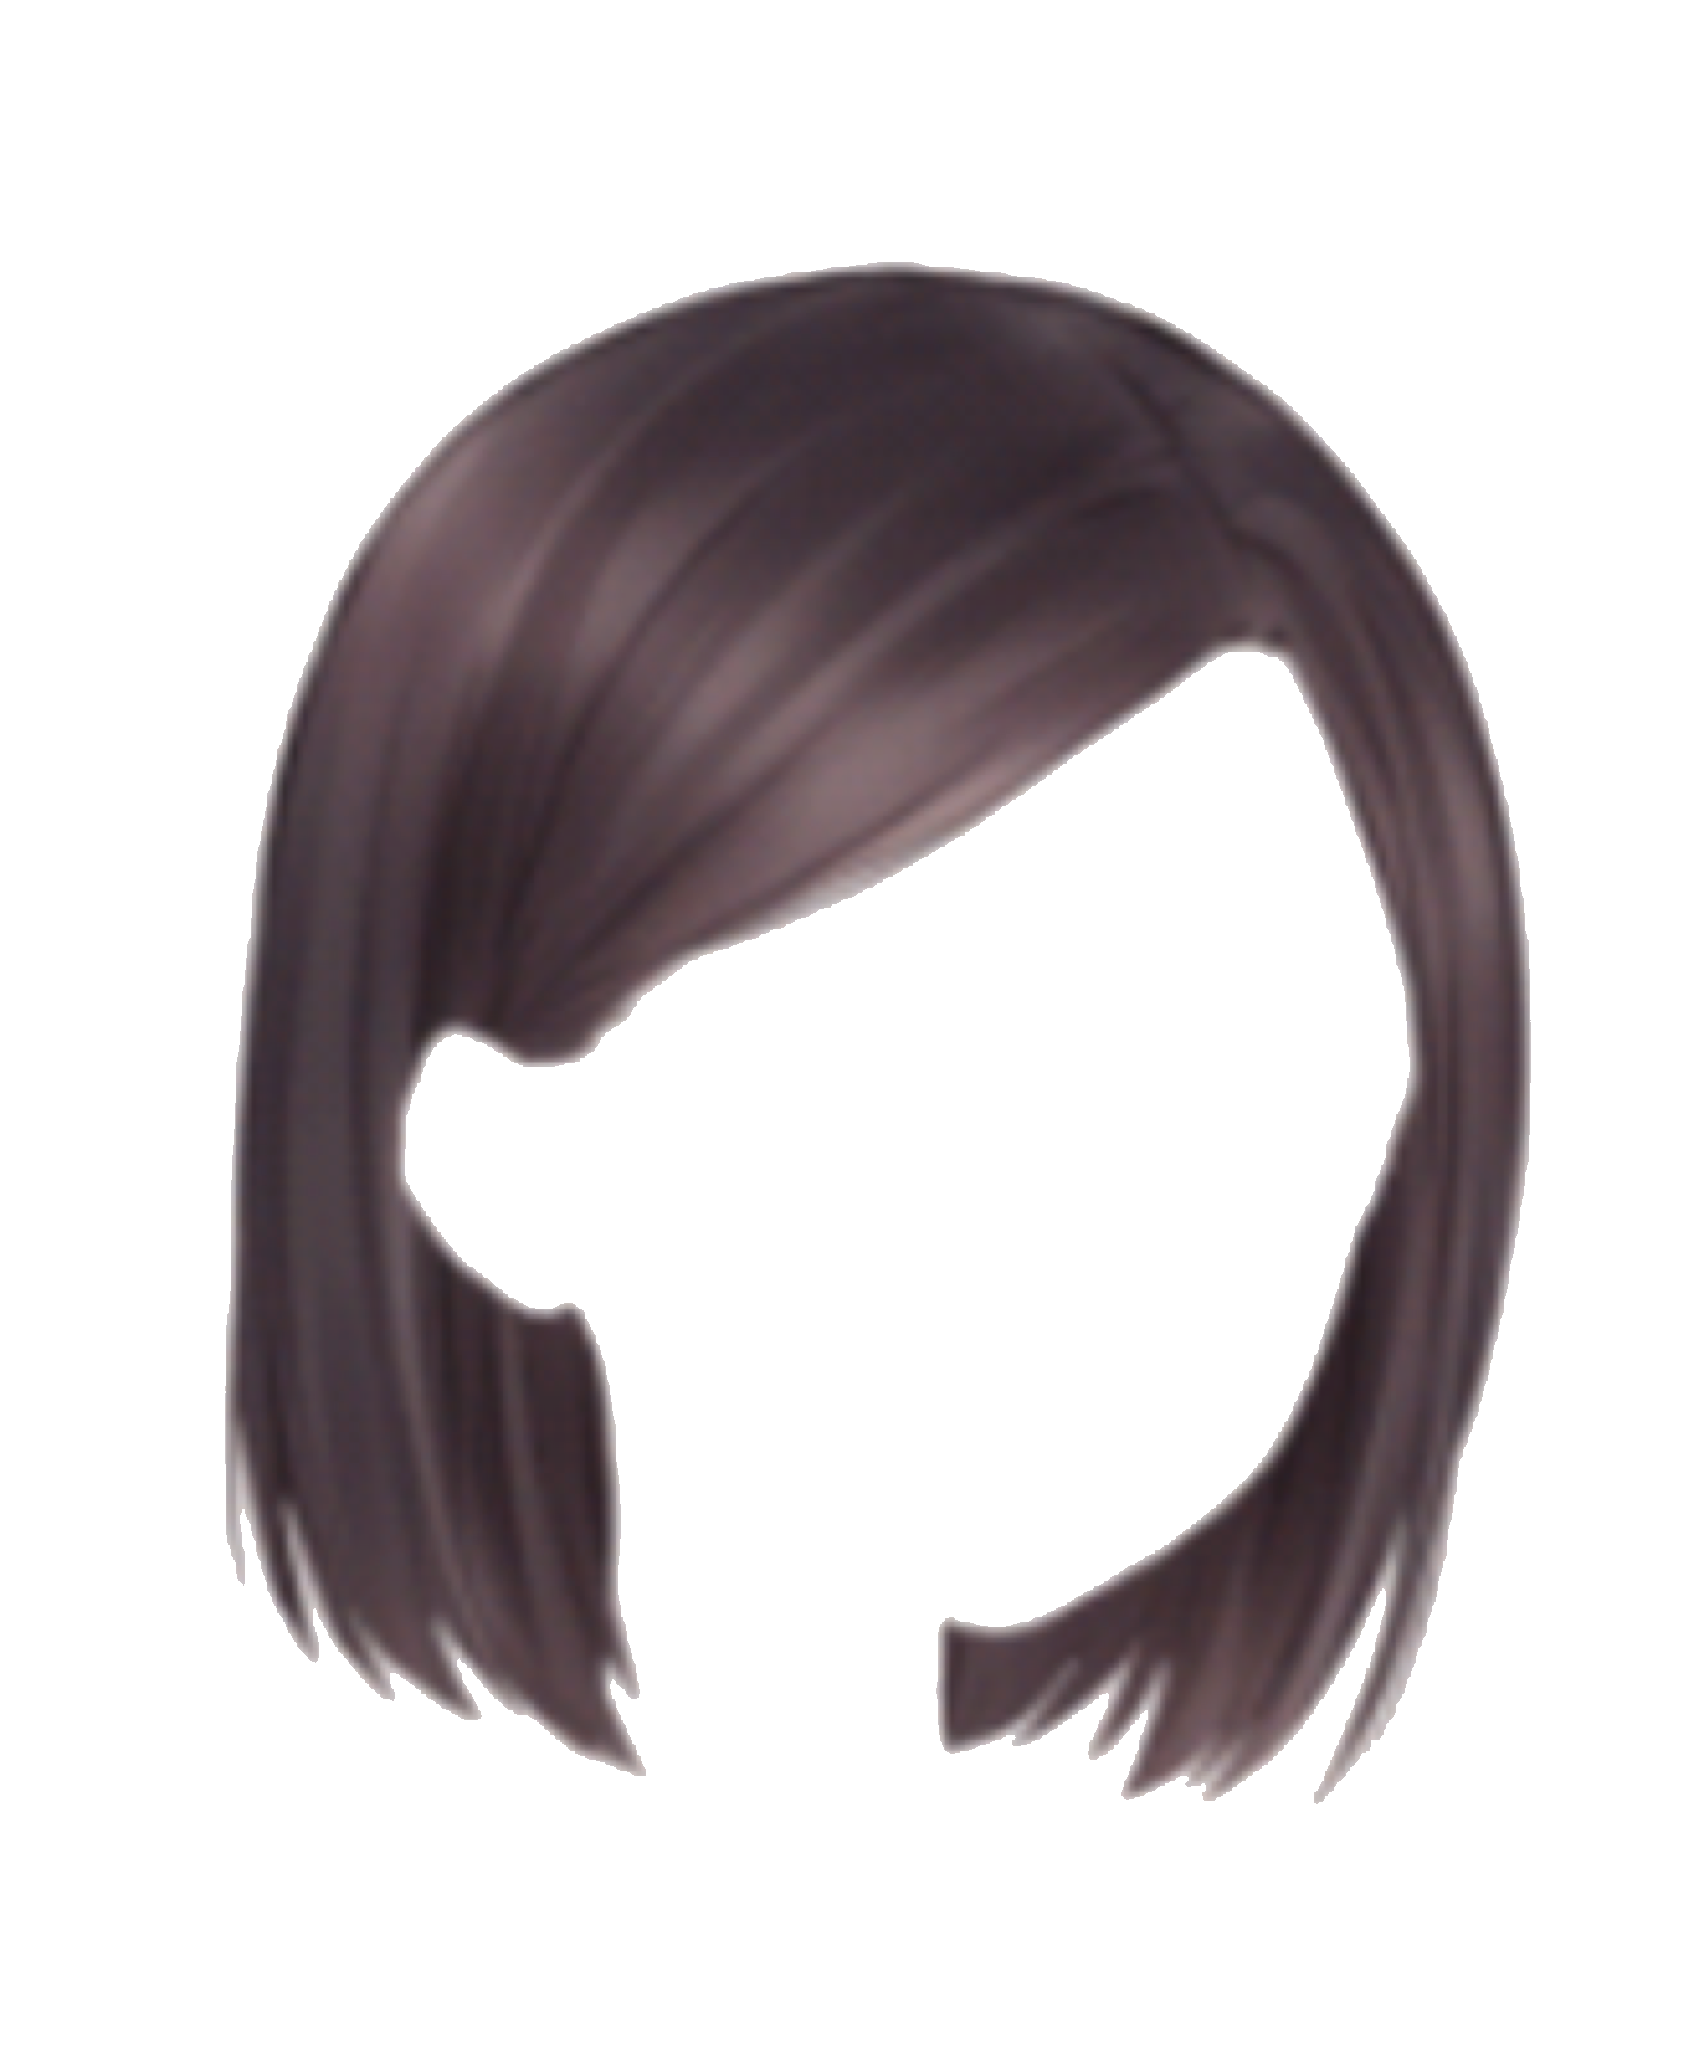 Wig PNG images free download.